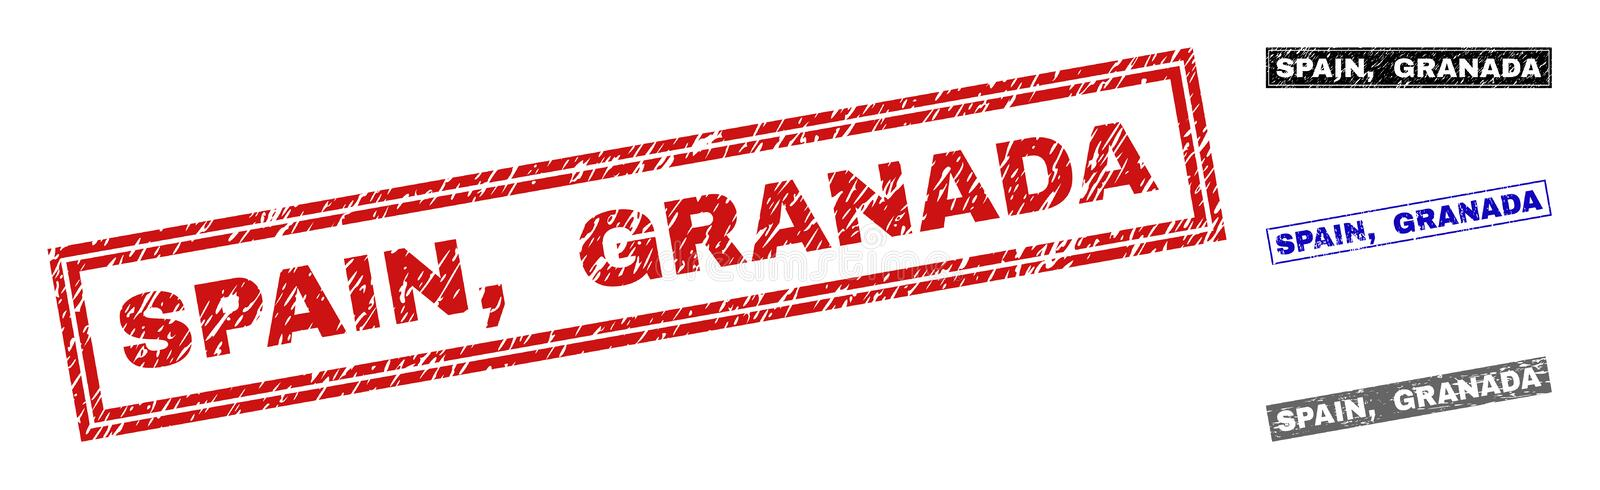 Grunge SPAIN, GRANADA Scratched Rectangle Stamps royalty free illustration